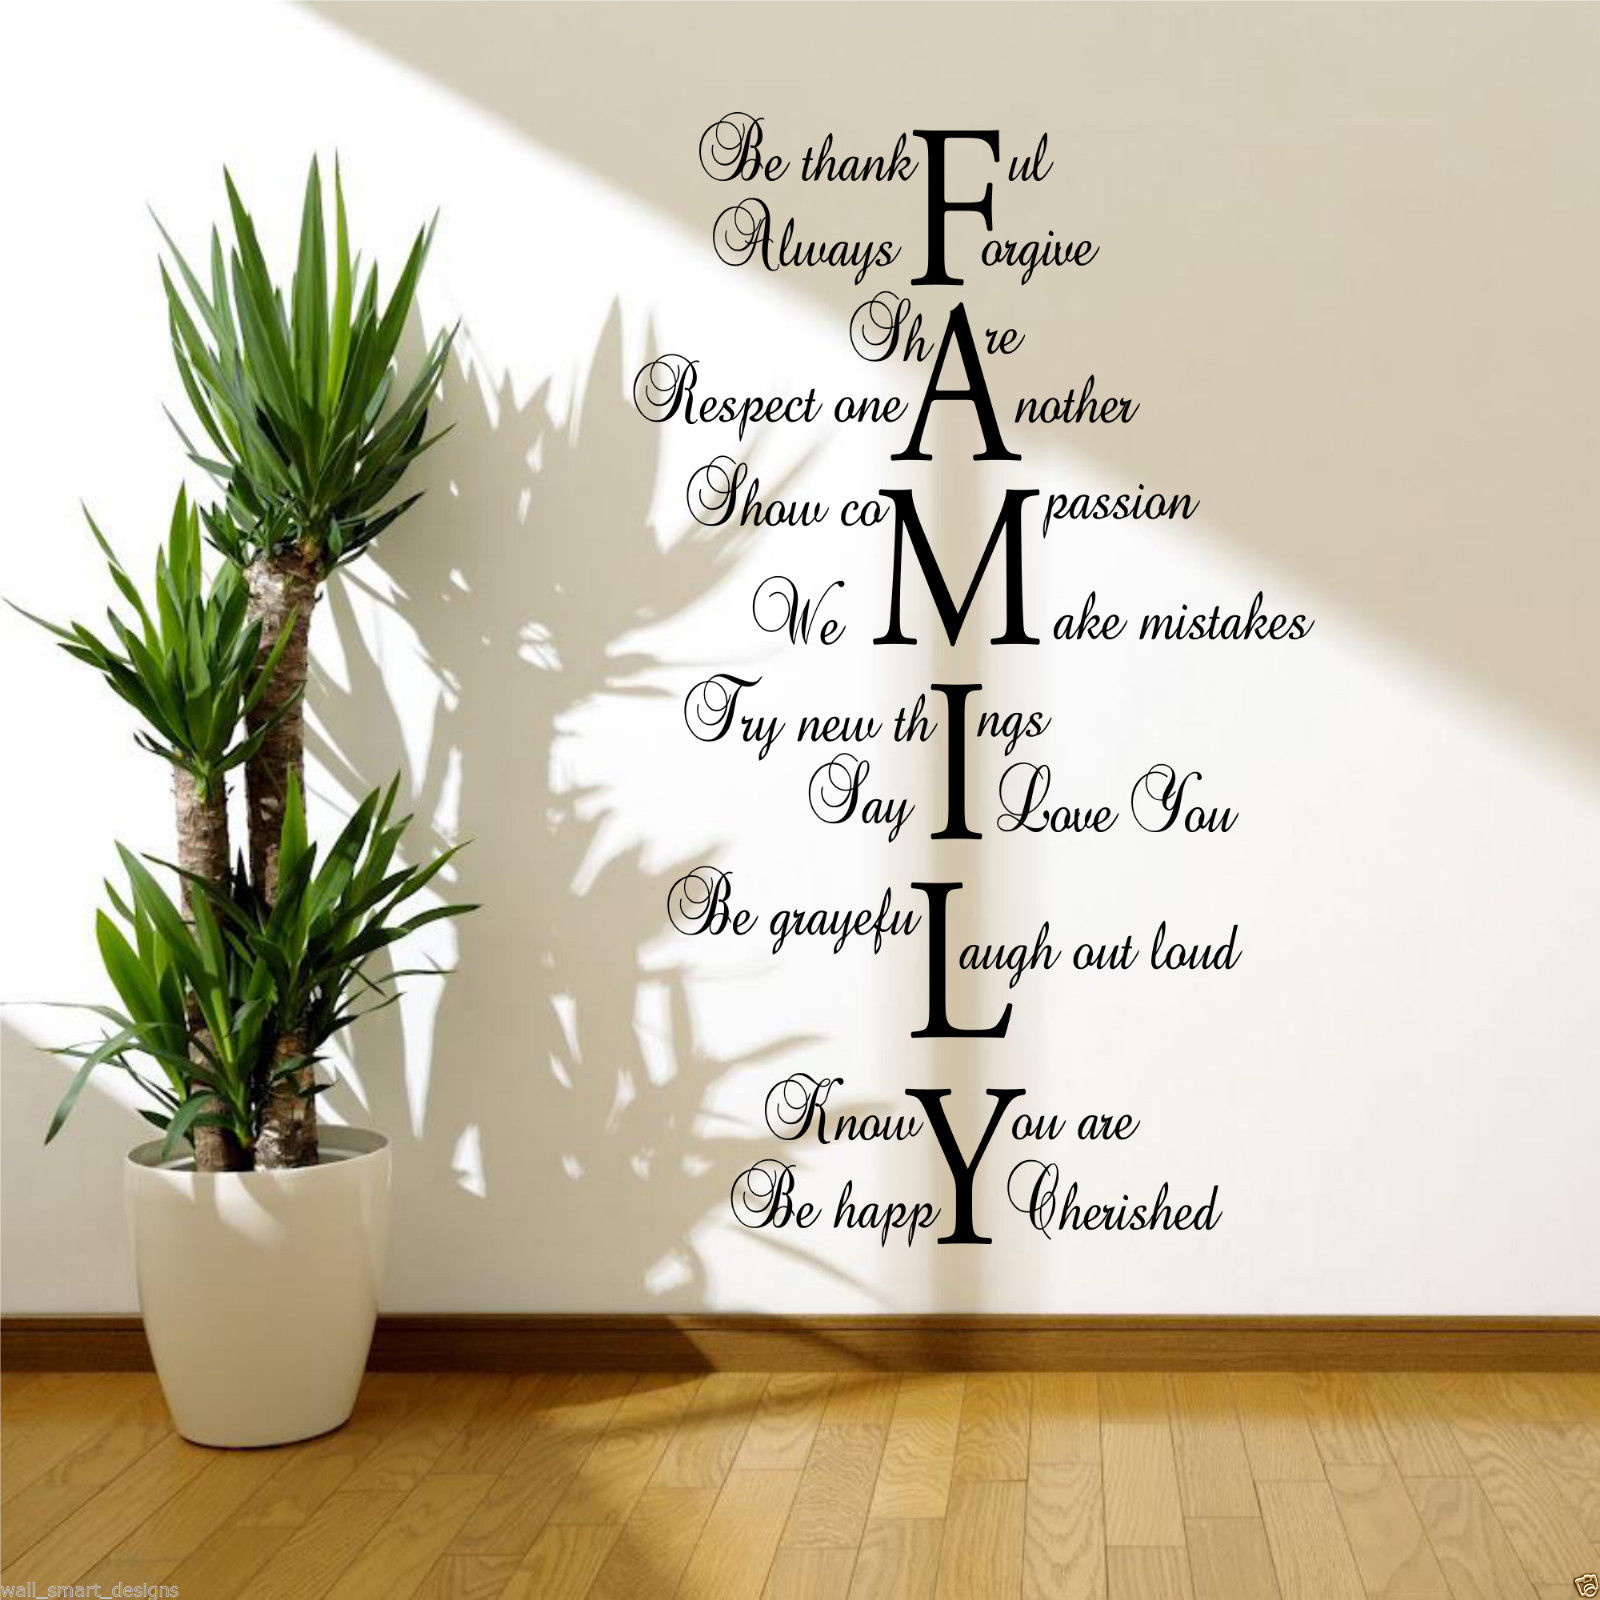 family love life wall art sticker quote room decal mural transfer sticker wsd417 ebay. Black Bedroom Furniture Sets. Home Design Ideas